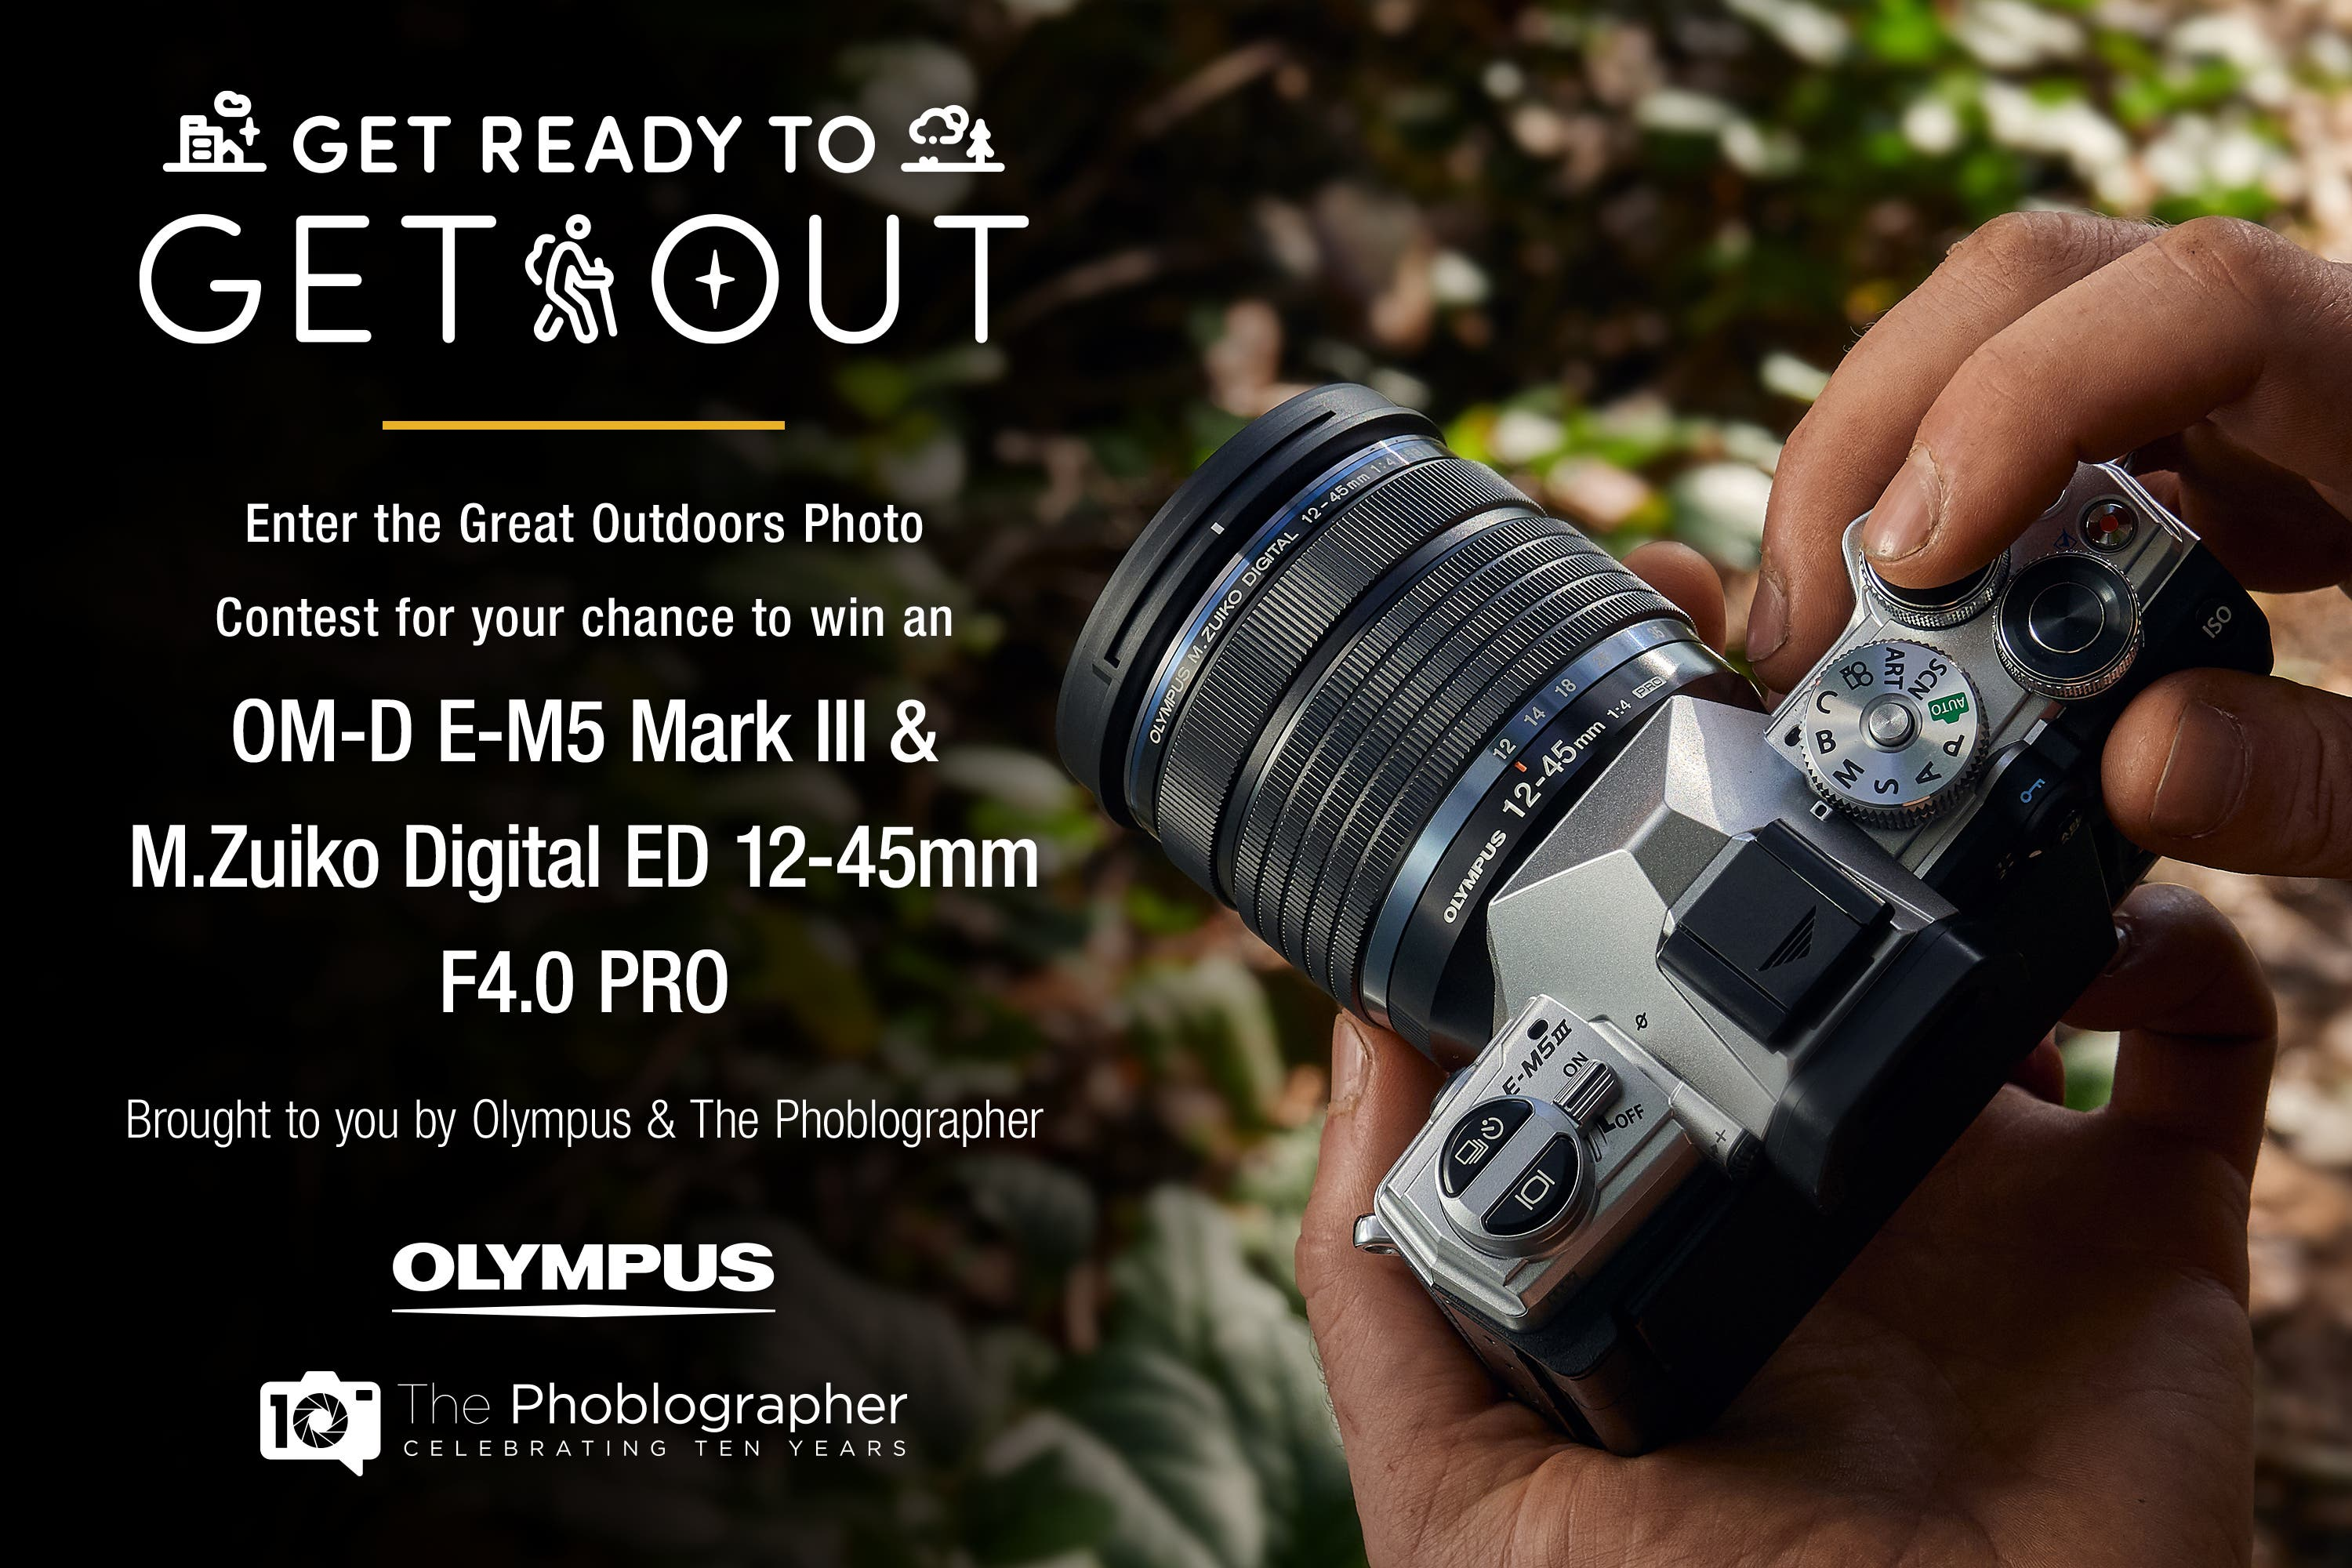 There Isn't Much Time Left for the Great Outdoors Photography Contest!